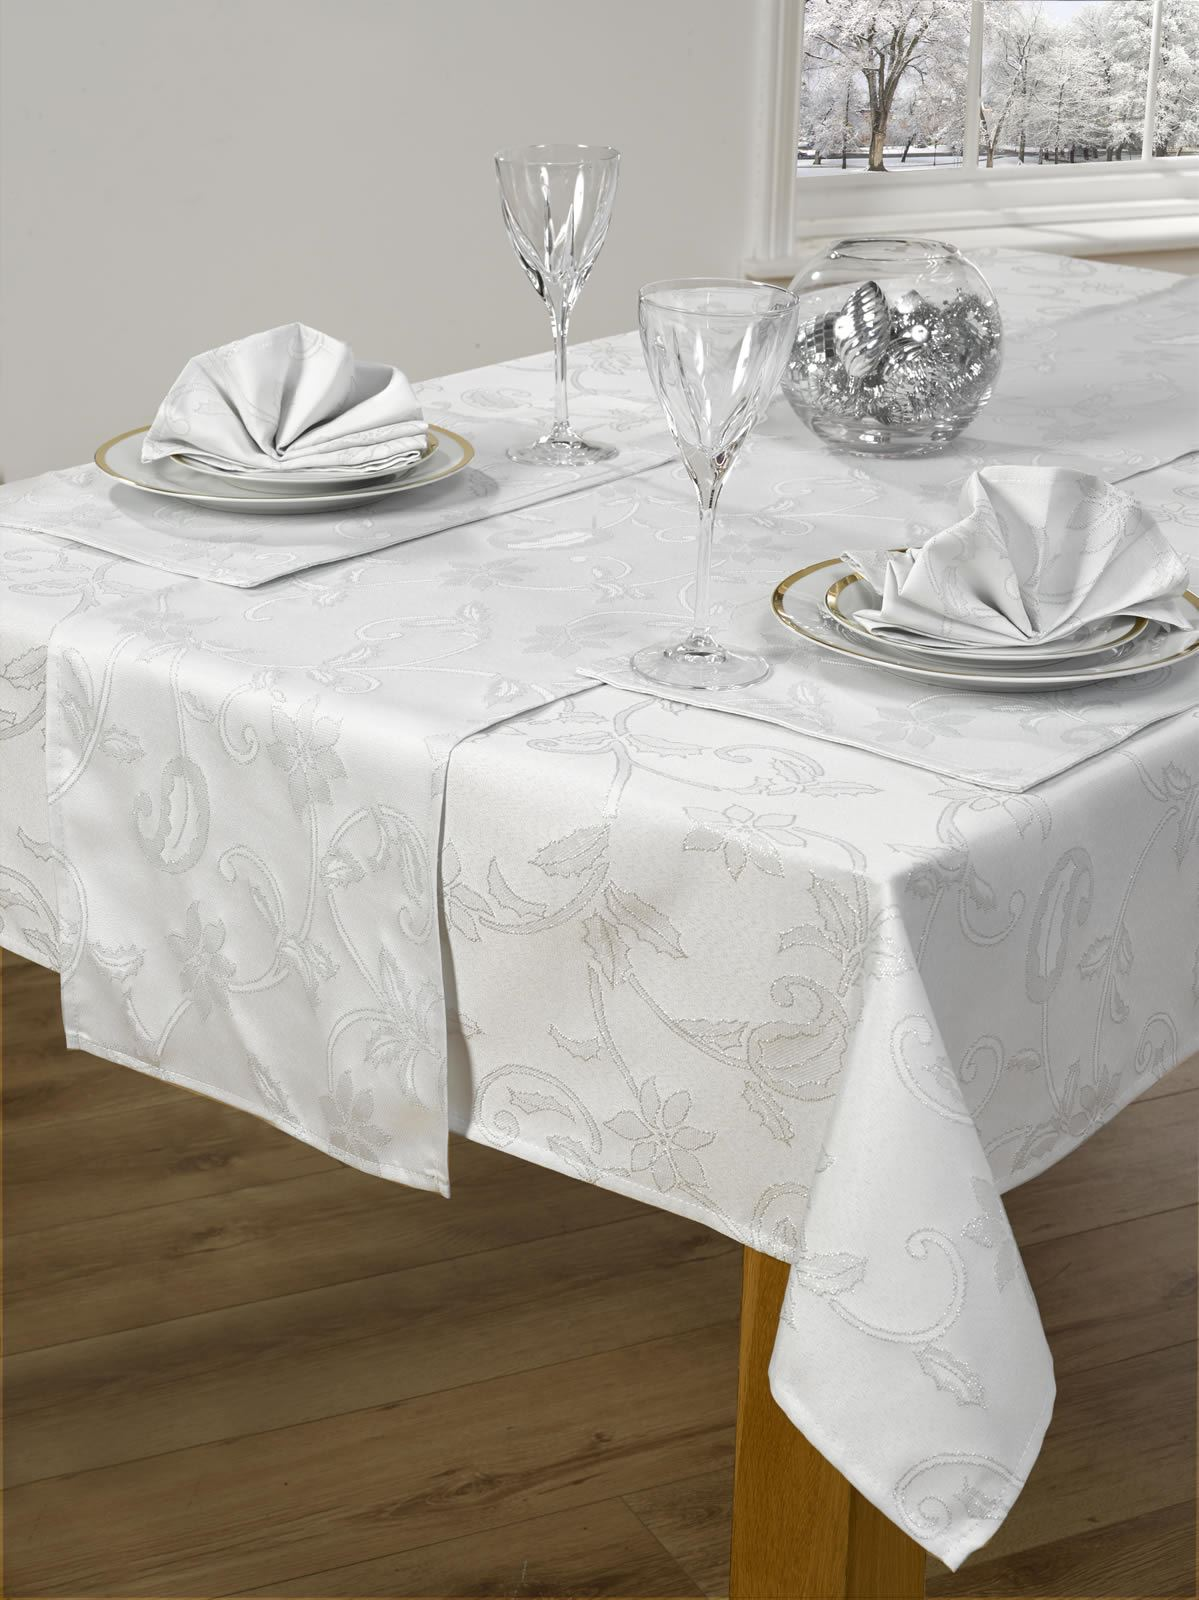 14 Piece Christmas Table Linen Set Cloth Napkins Runner